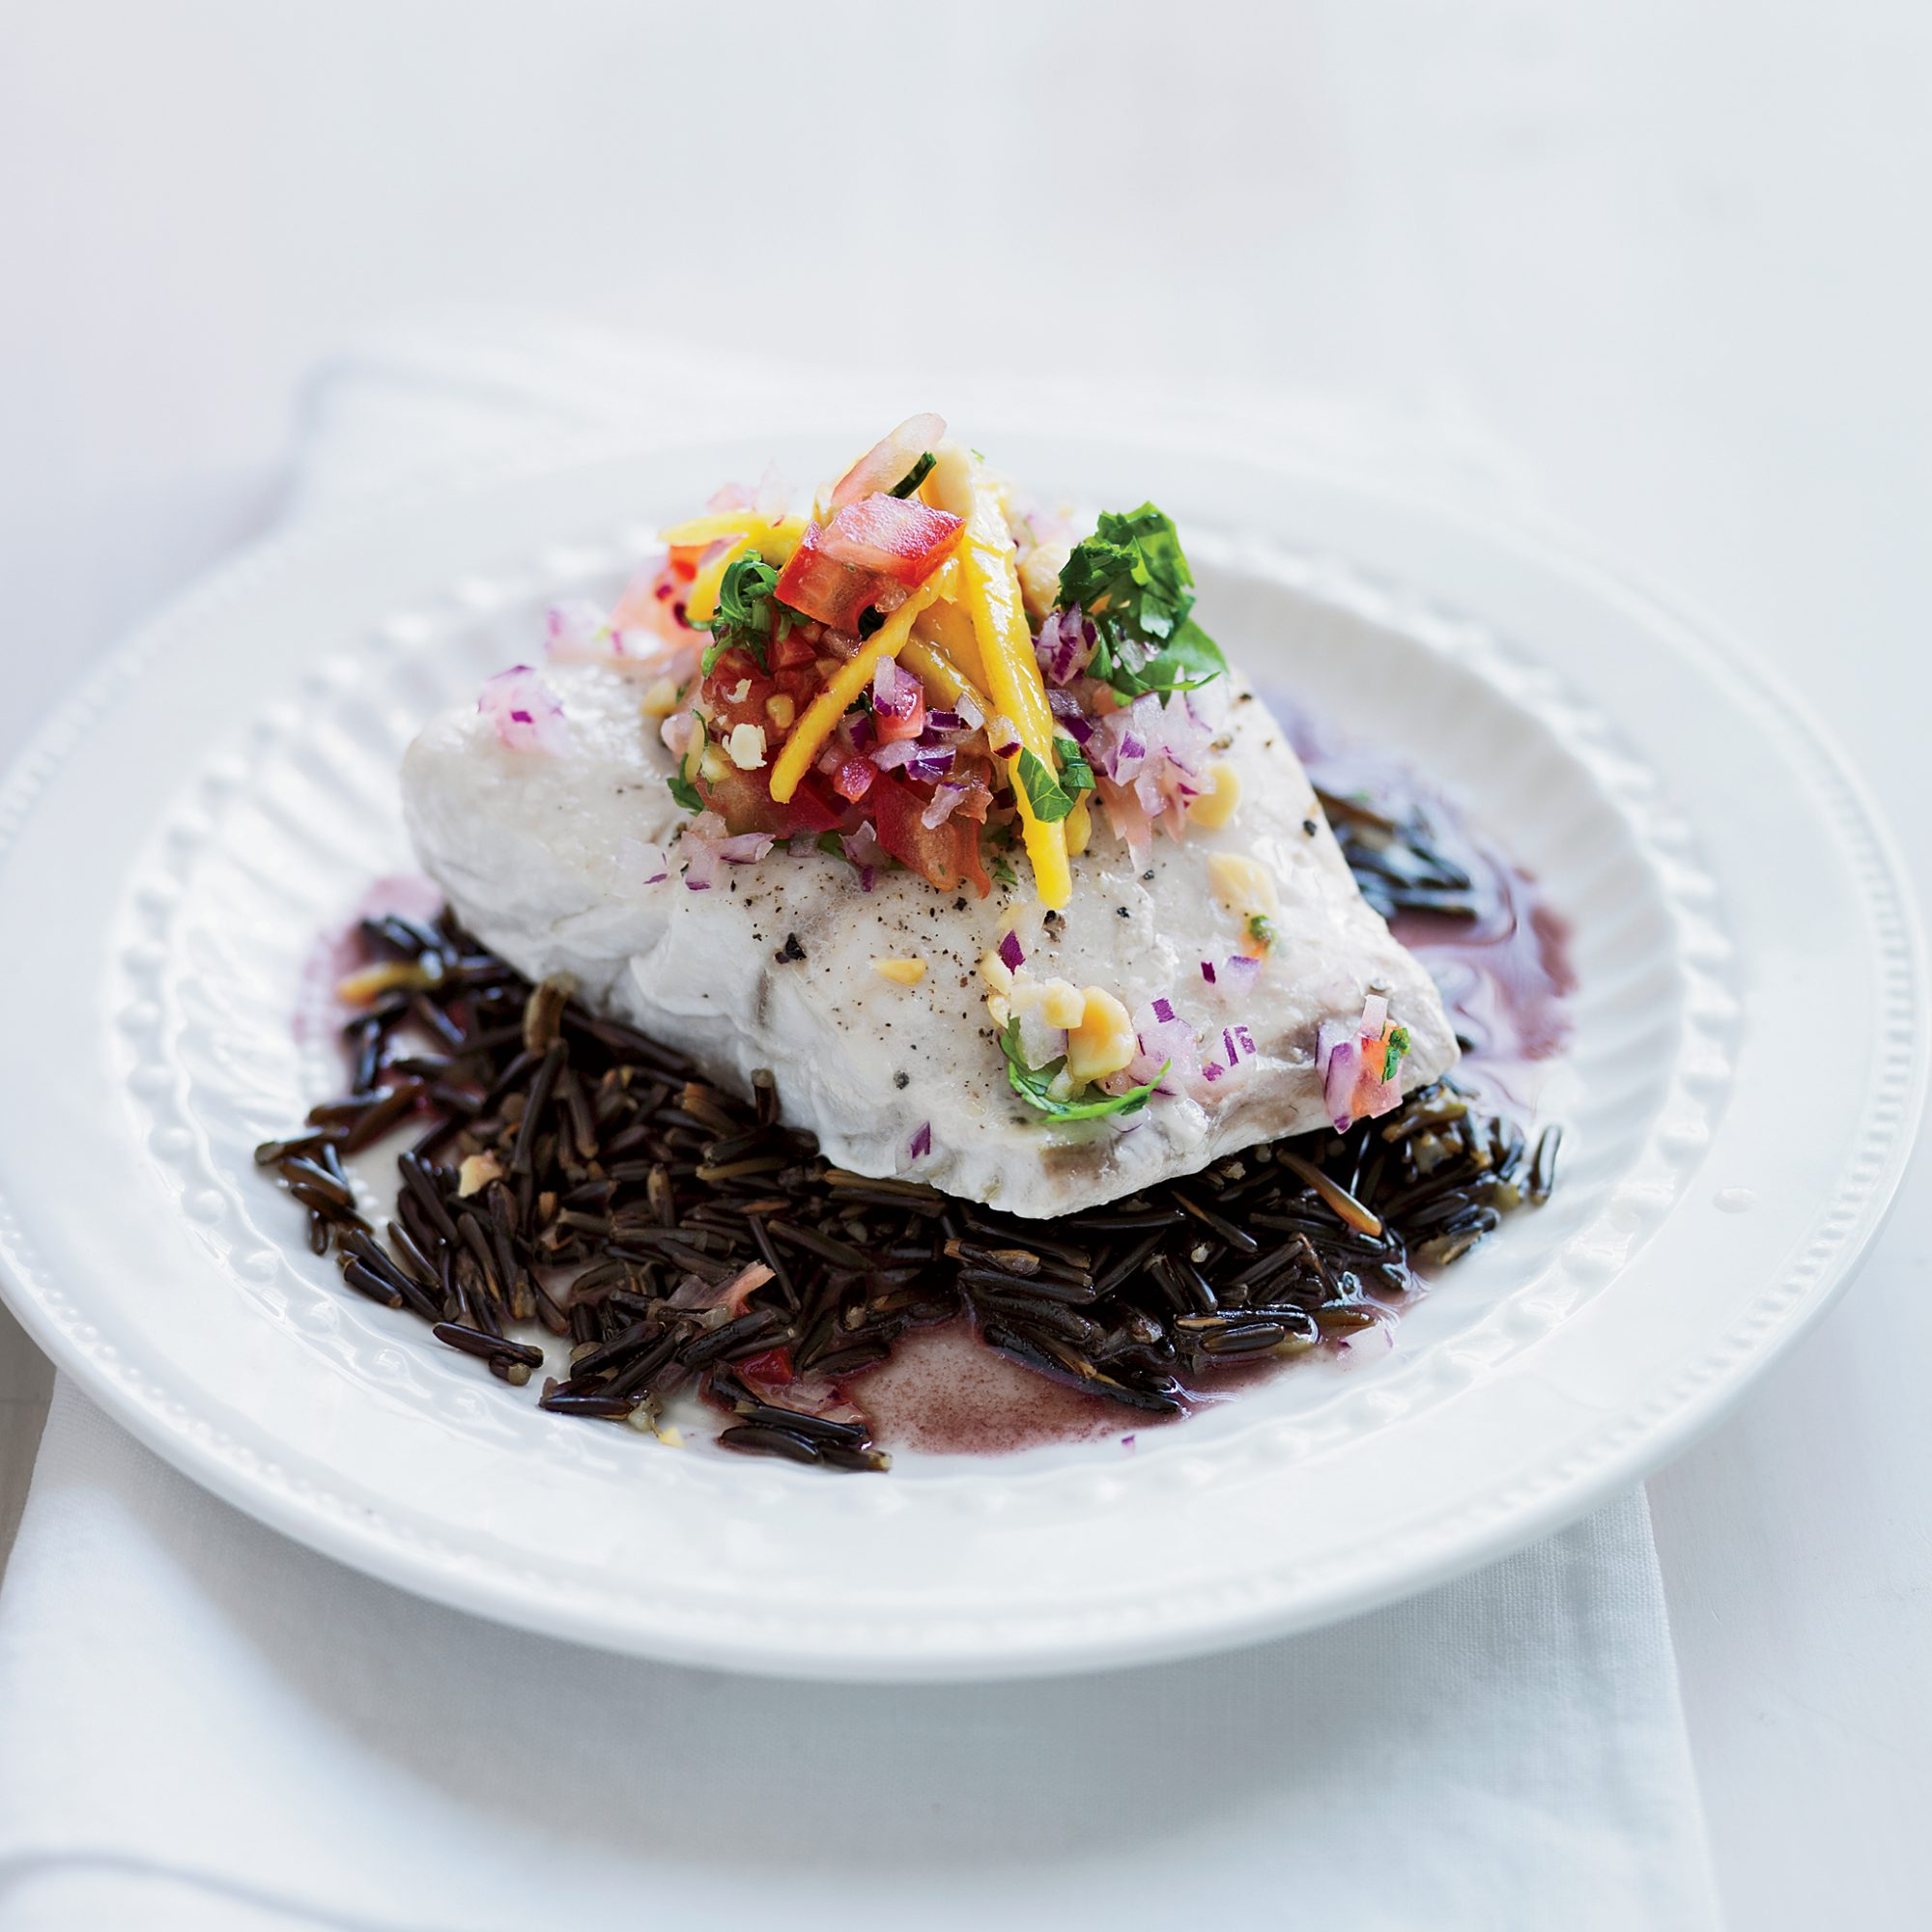 Striped Bass with Mango & Pickled Ginger Salad